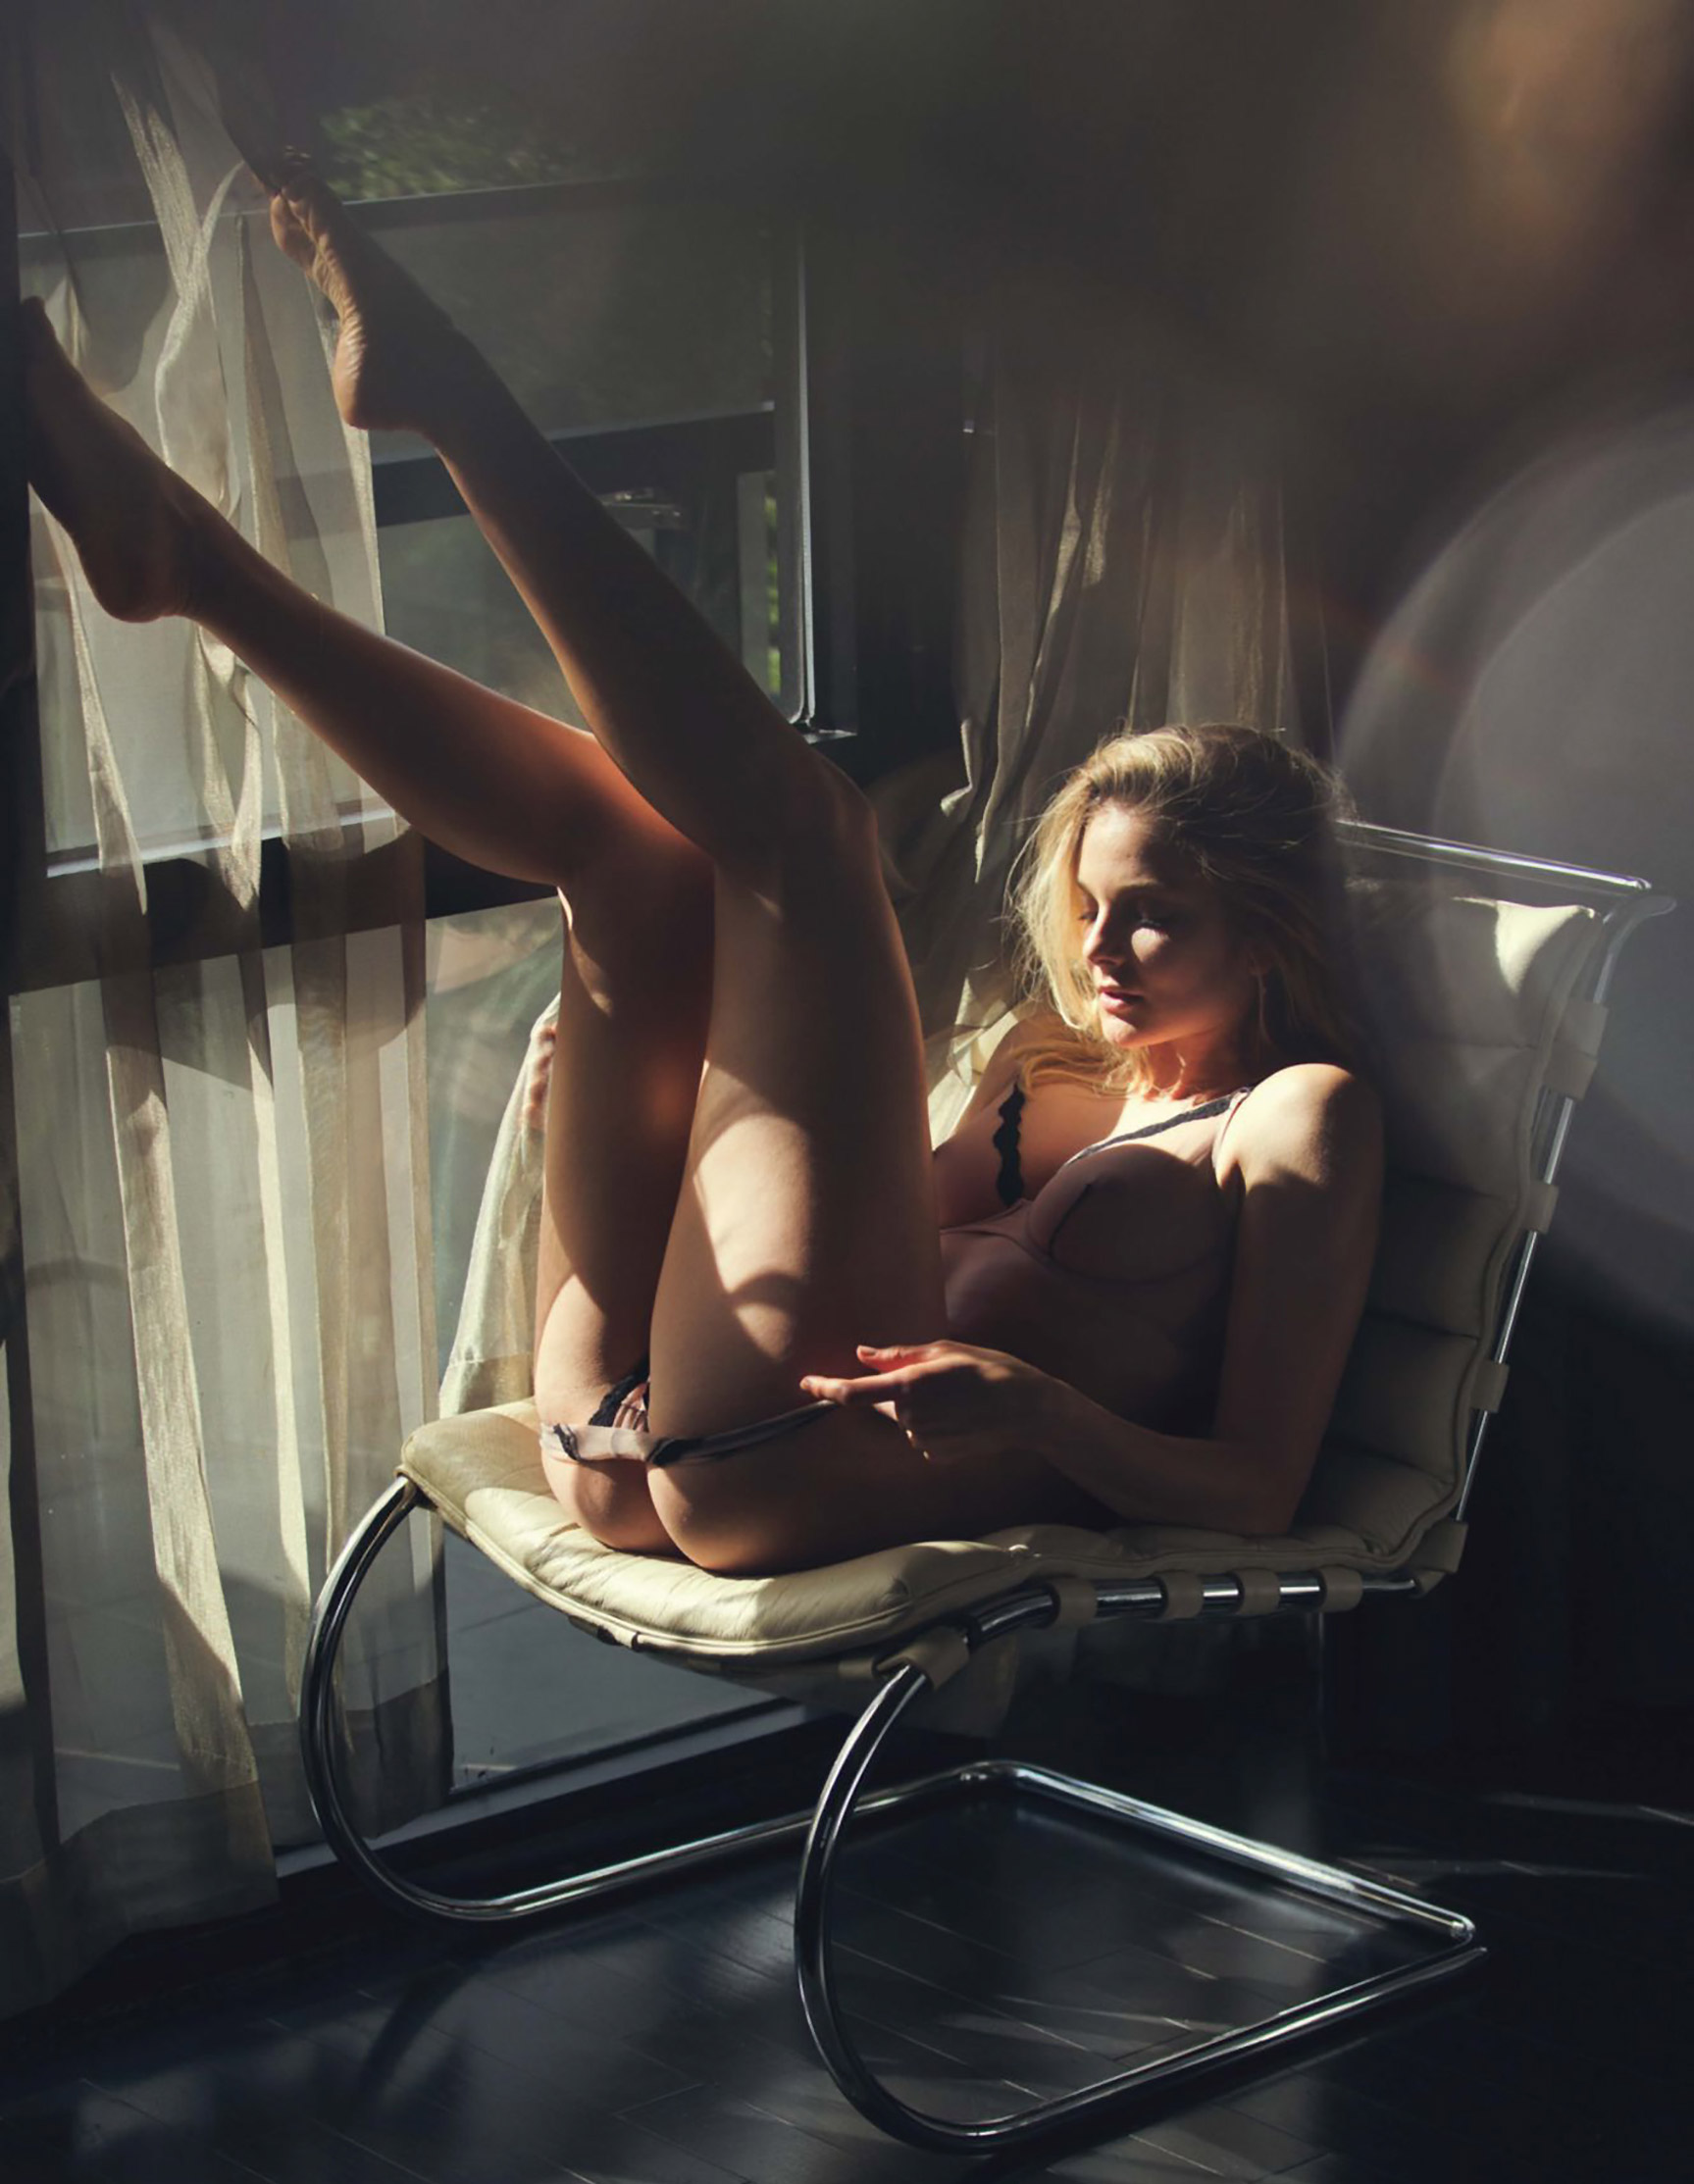 Девушка месяца Энико Михалик / Eniko Mihalik by David Bellemere - Playboy US december 2016 playmate